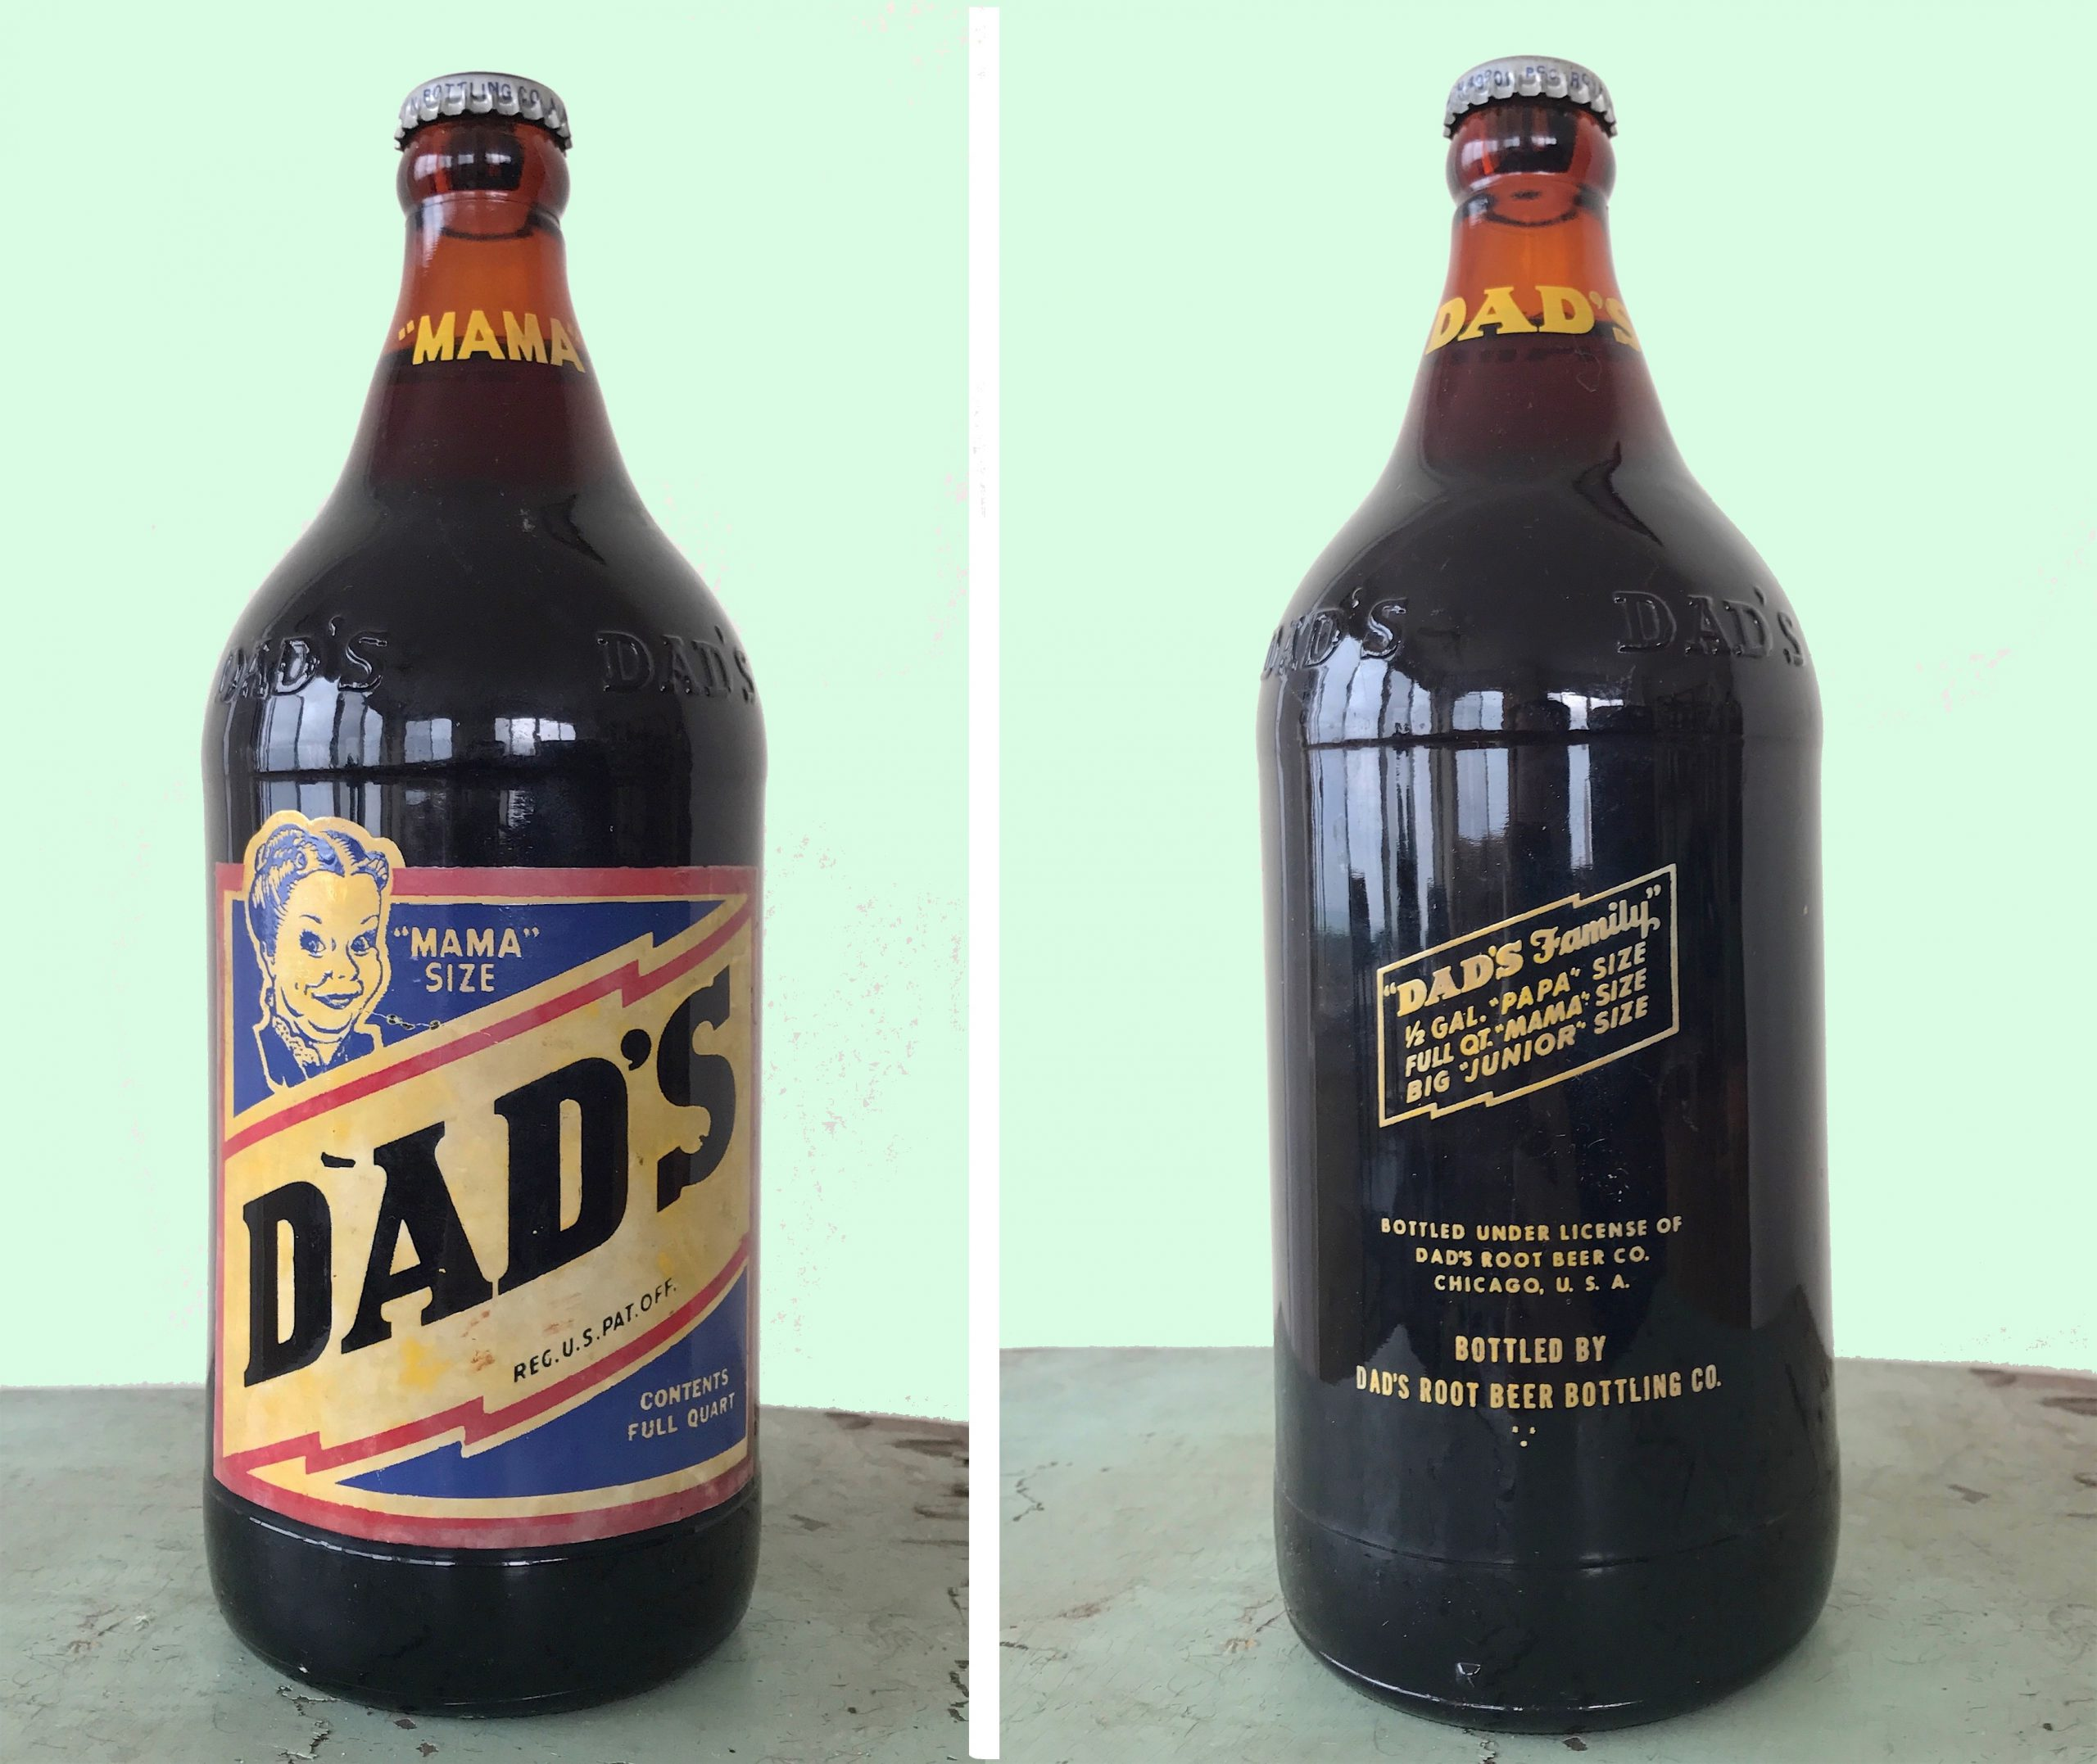 Dad's Root Beer Co., est. 1937